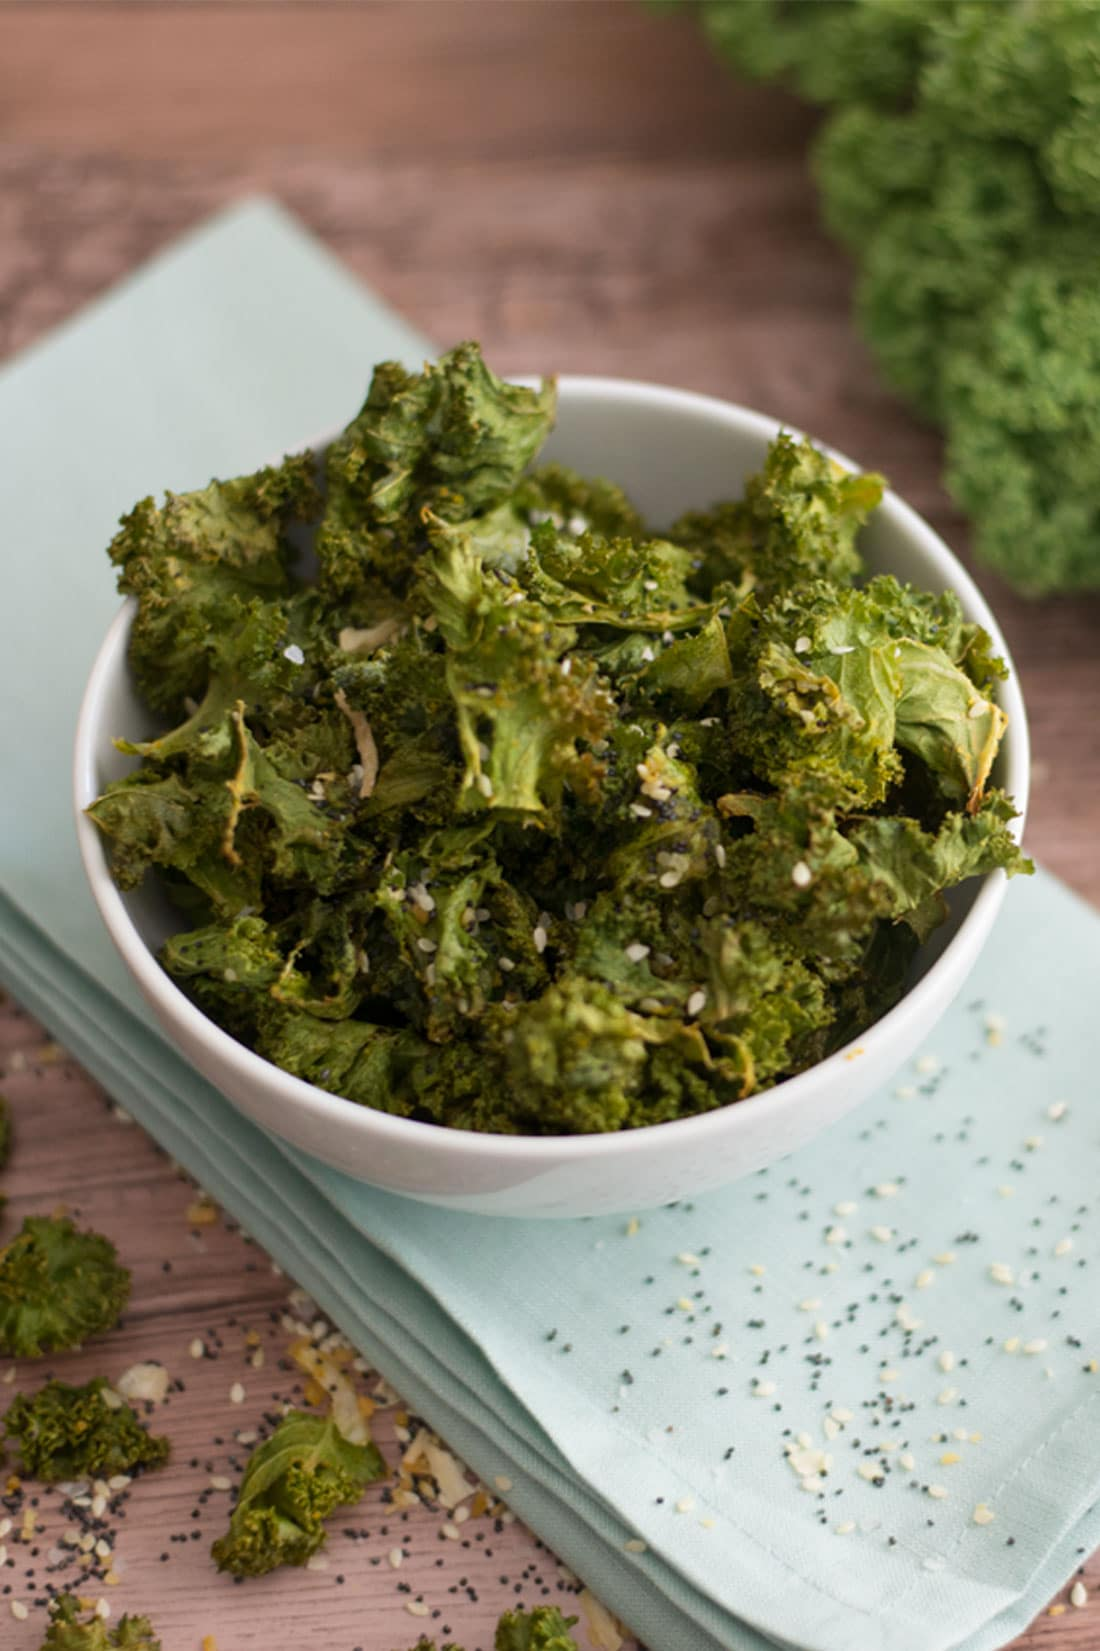 Everything Bagel Kale Chips -- All simple ingredients, these kale chips are an easy guilt free vegan and gluten free snack! | mindfulavocado